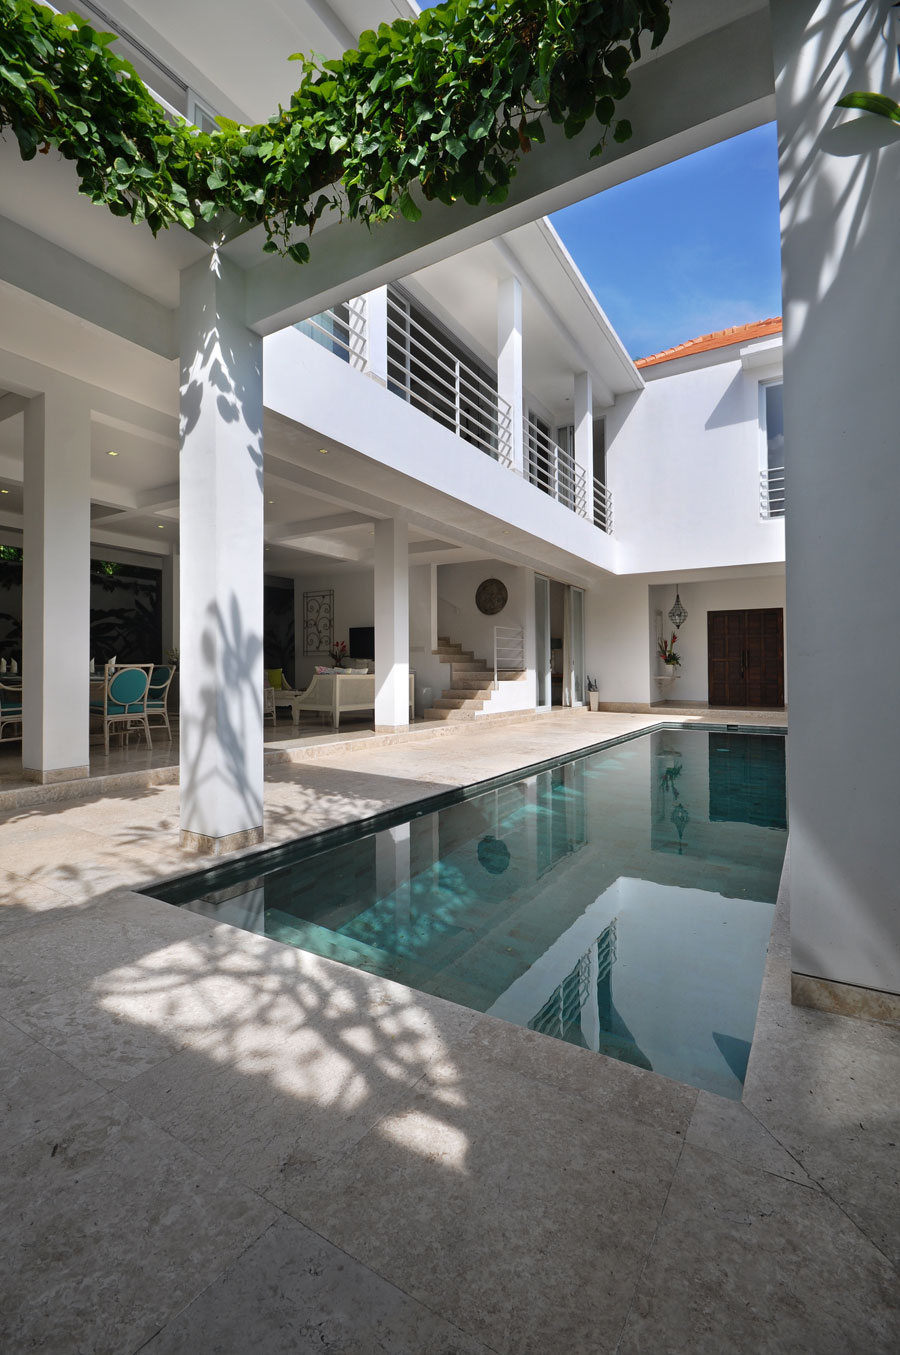 The pool creates a centrepiece in the space.